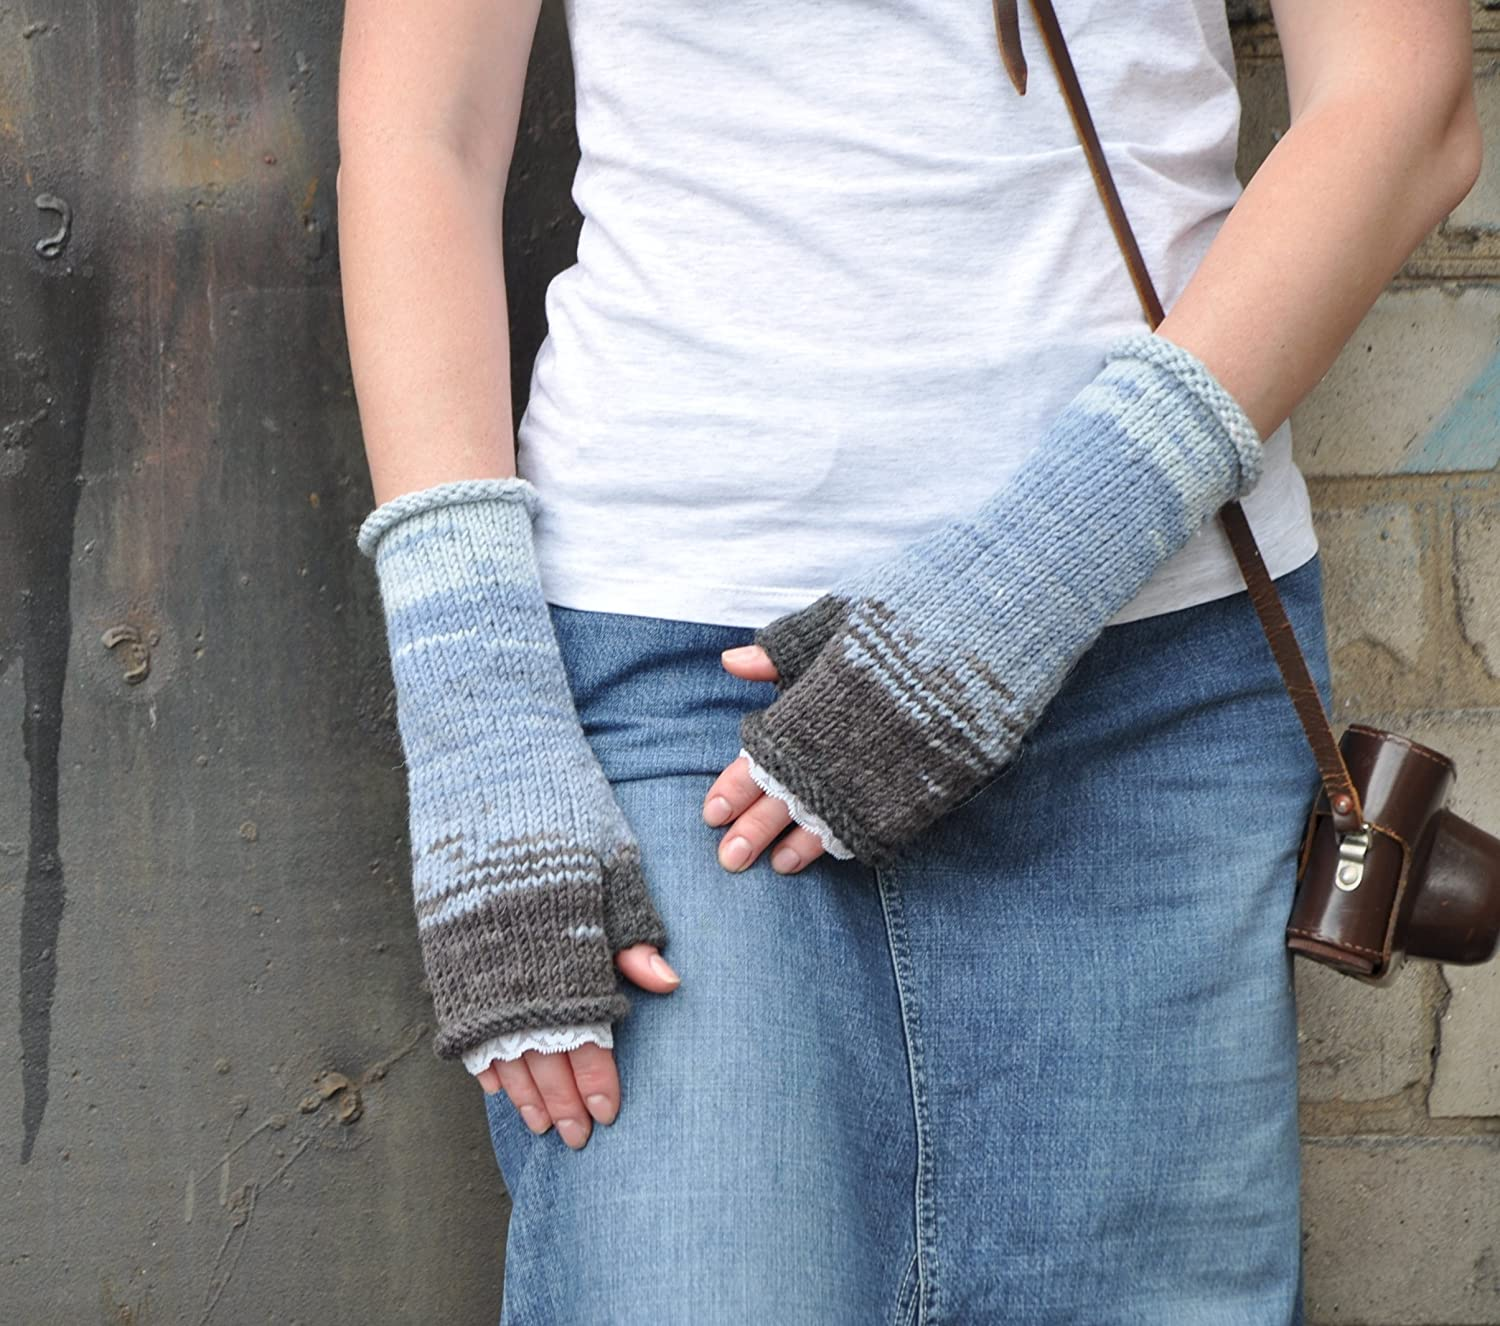 Knit Fingerless Gloves multi color with lace trim, gray and blue color Arm Warmers, Boho Chic, Women Accessories Slouchy Boho Glove mittens